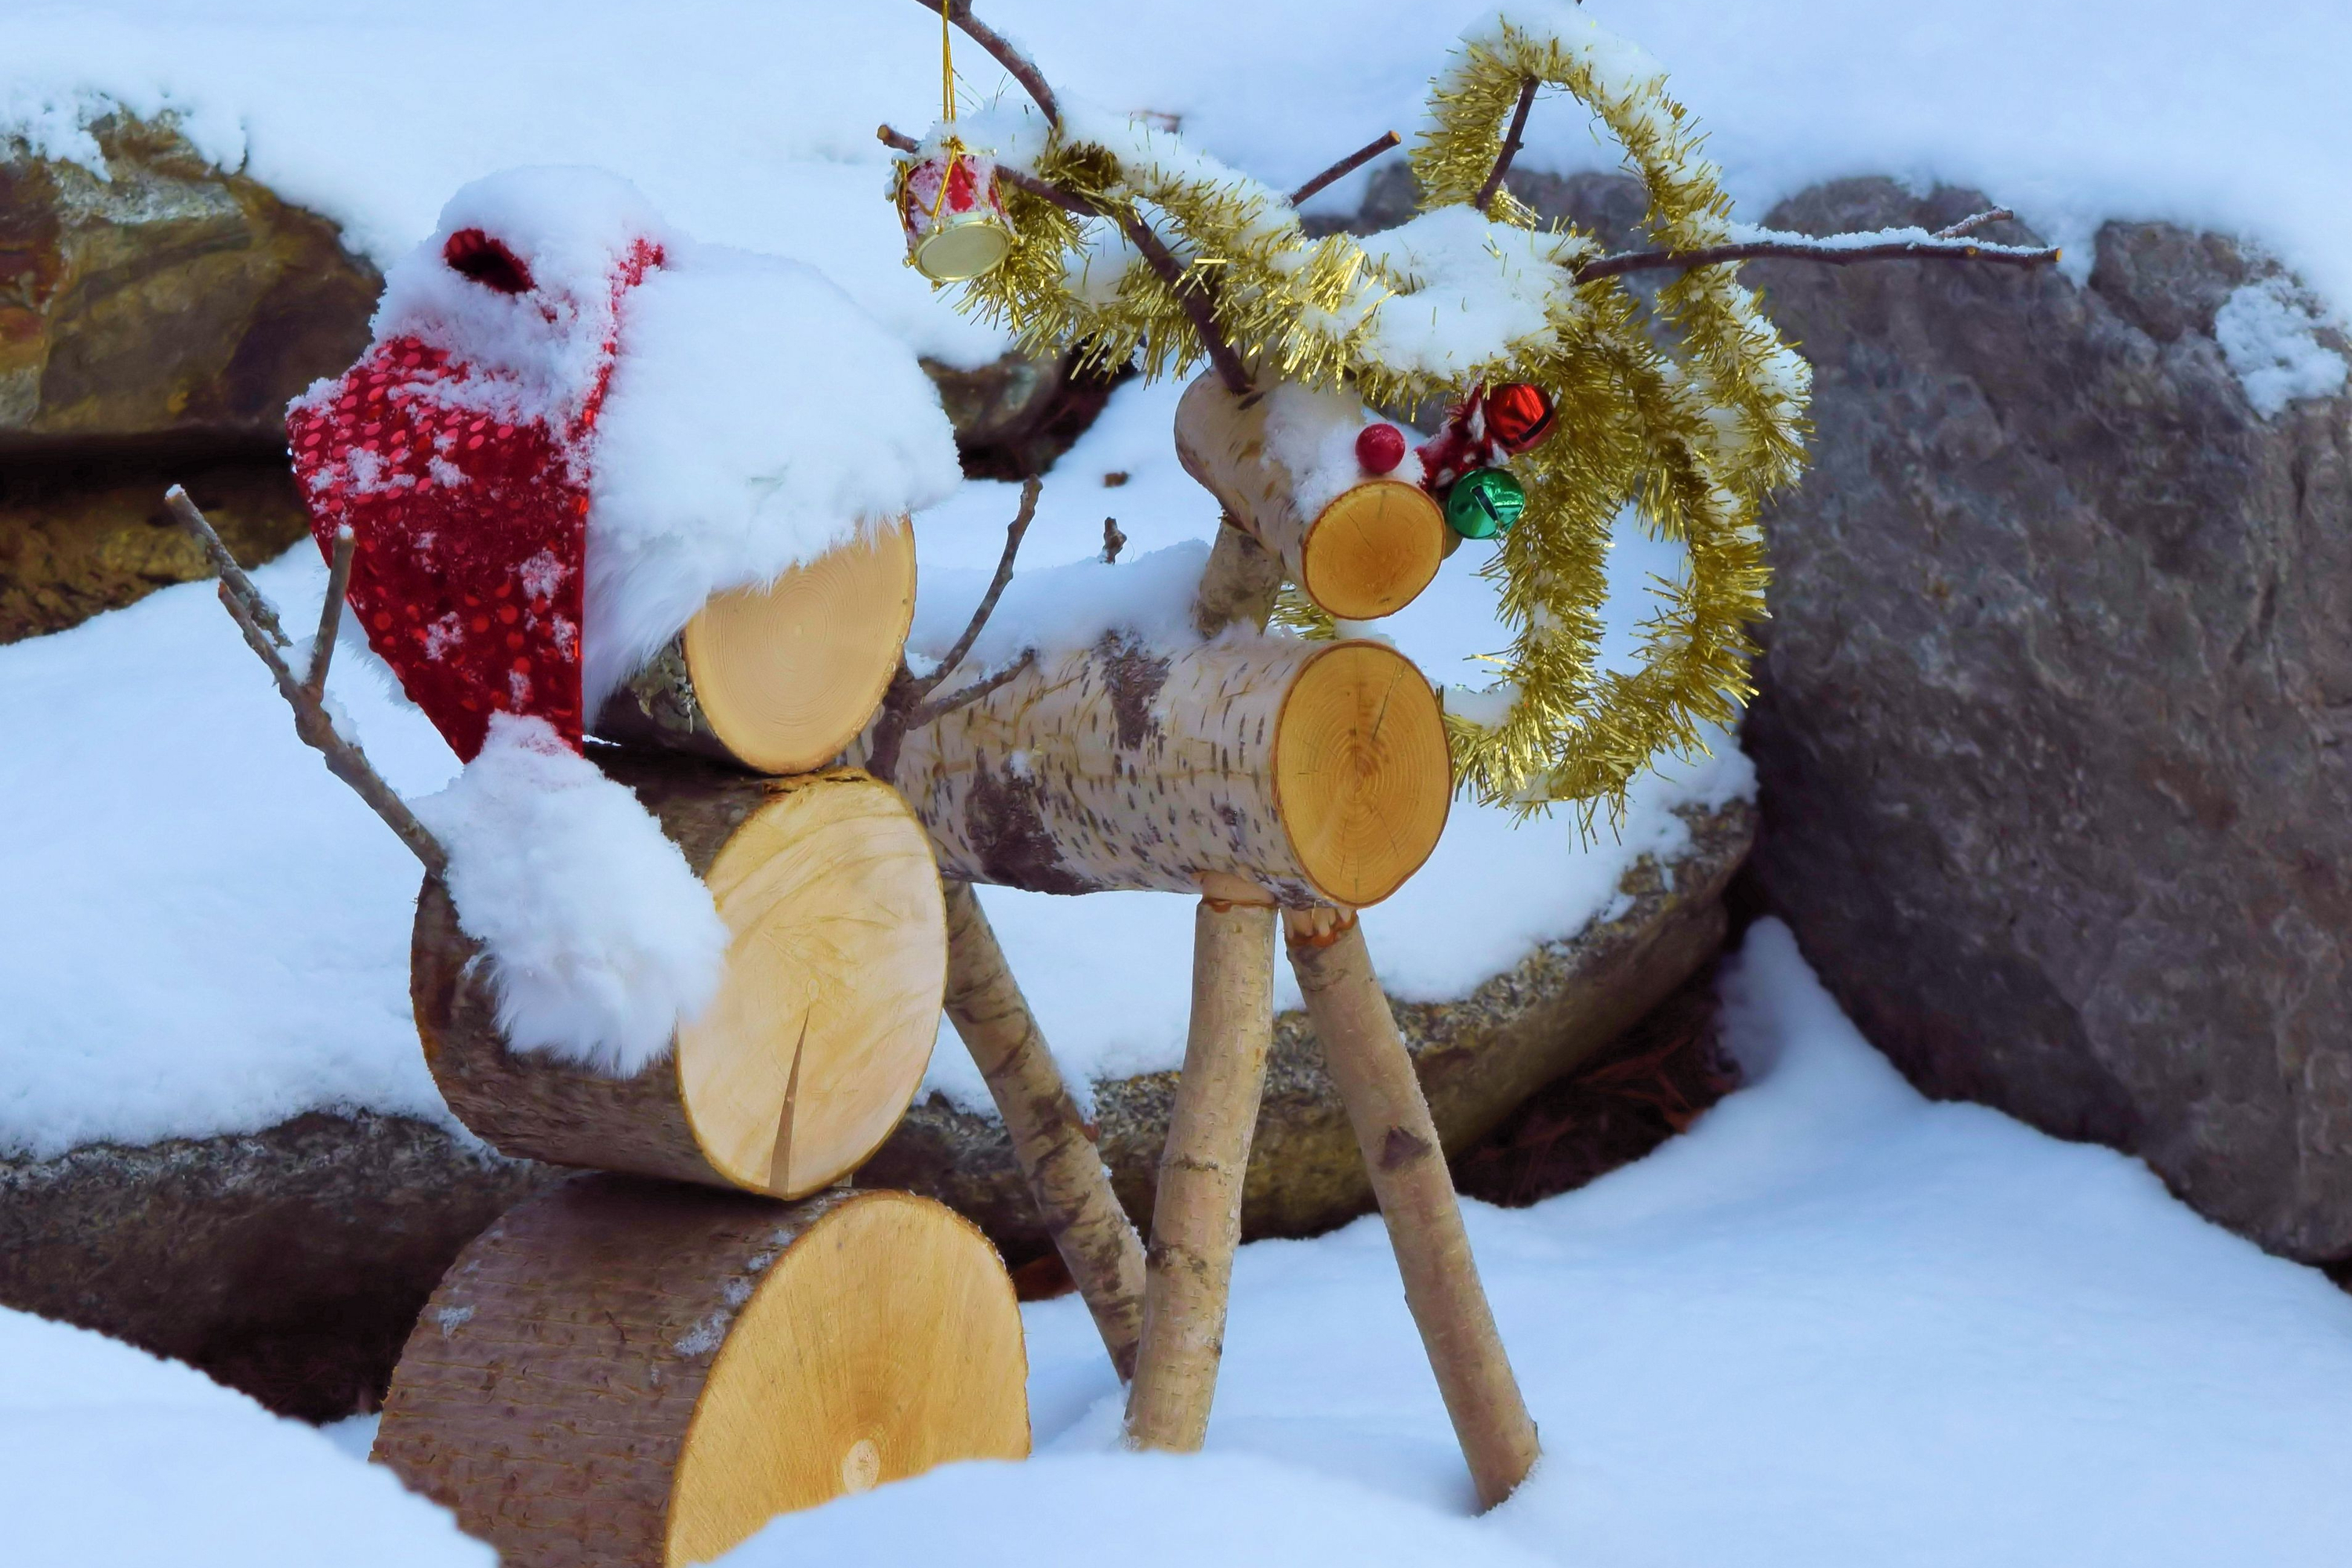 This reindeer is the perfect addition to any yard this Christmas season. For more birch wood Christmas decor ideas, look here! Birch Christmas Craft Decorations